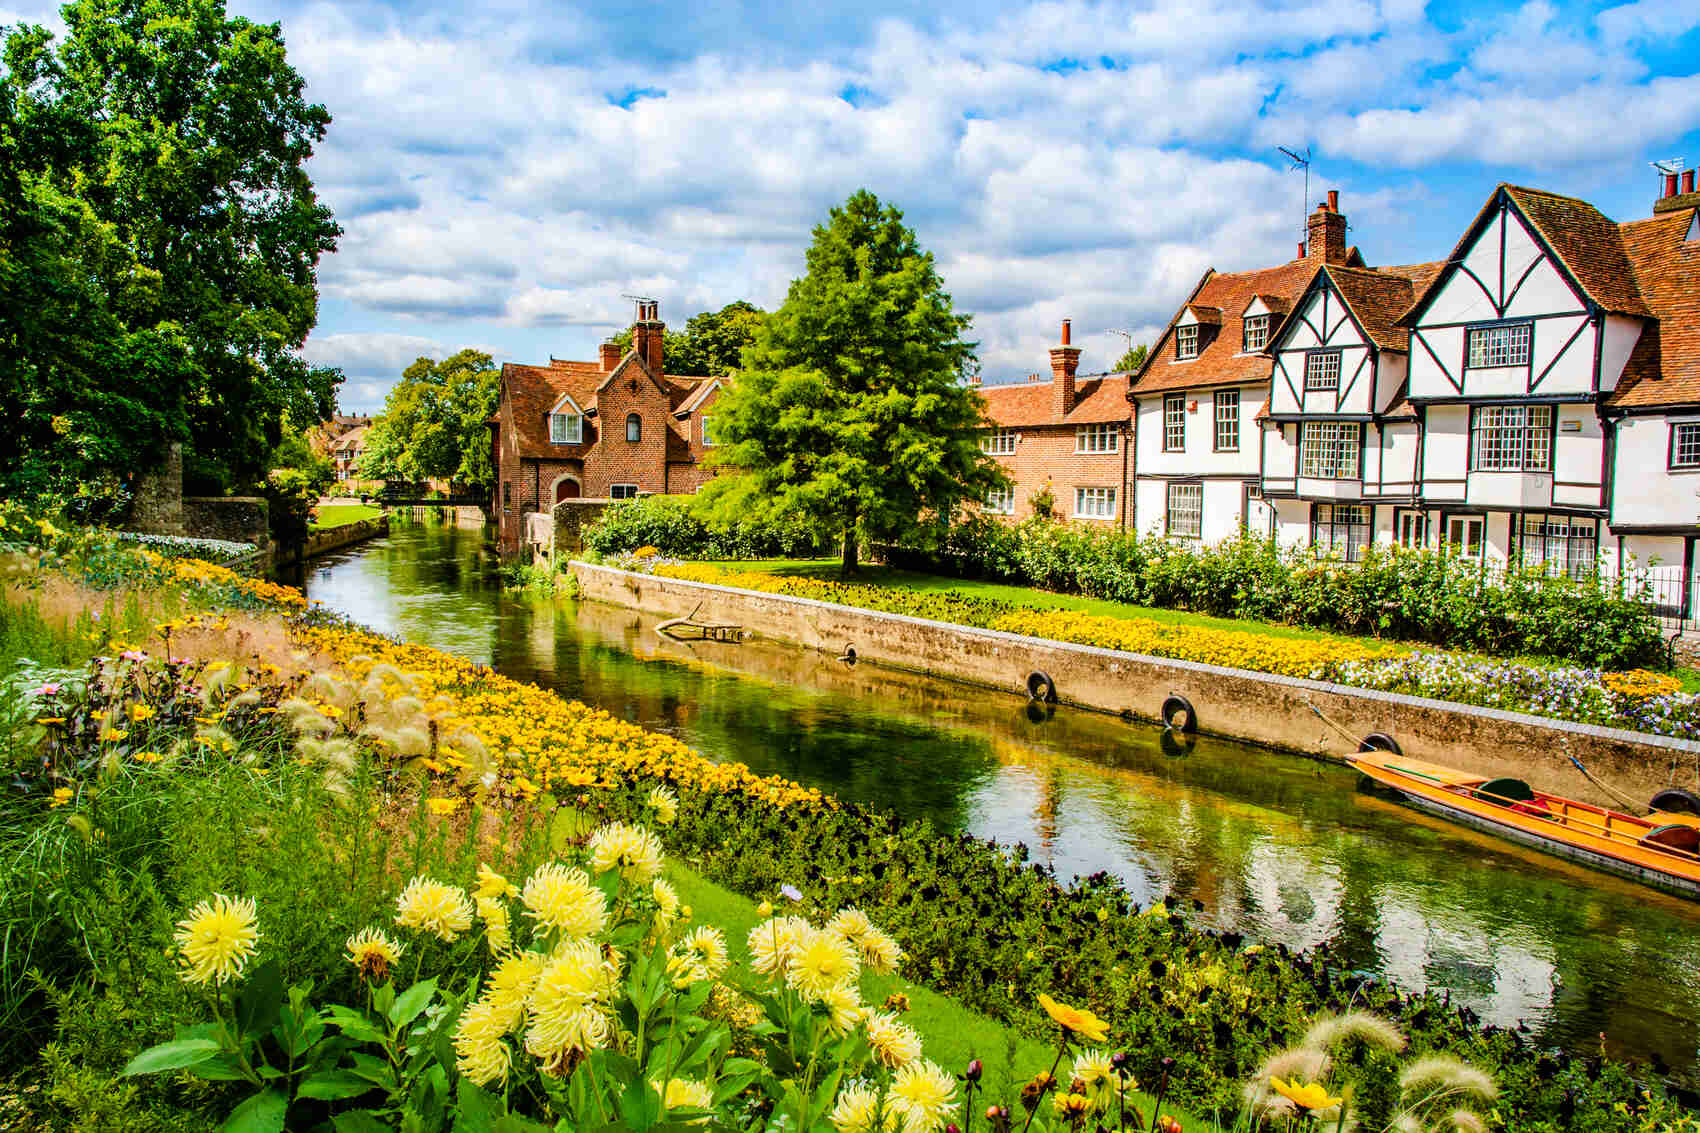 Landscape of the Great Stour river near Westgate Gardens Canterbury Kent UK